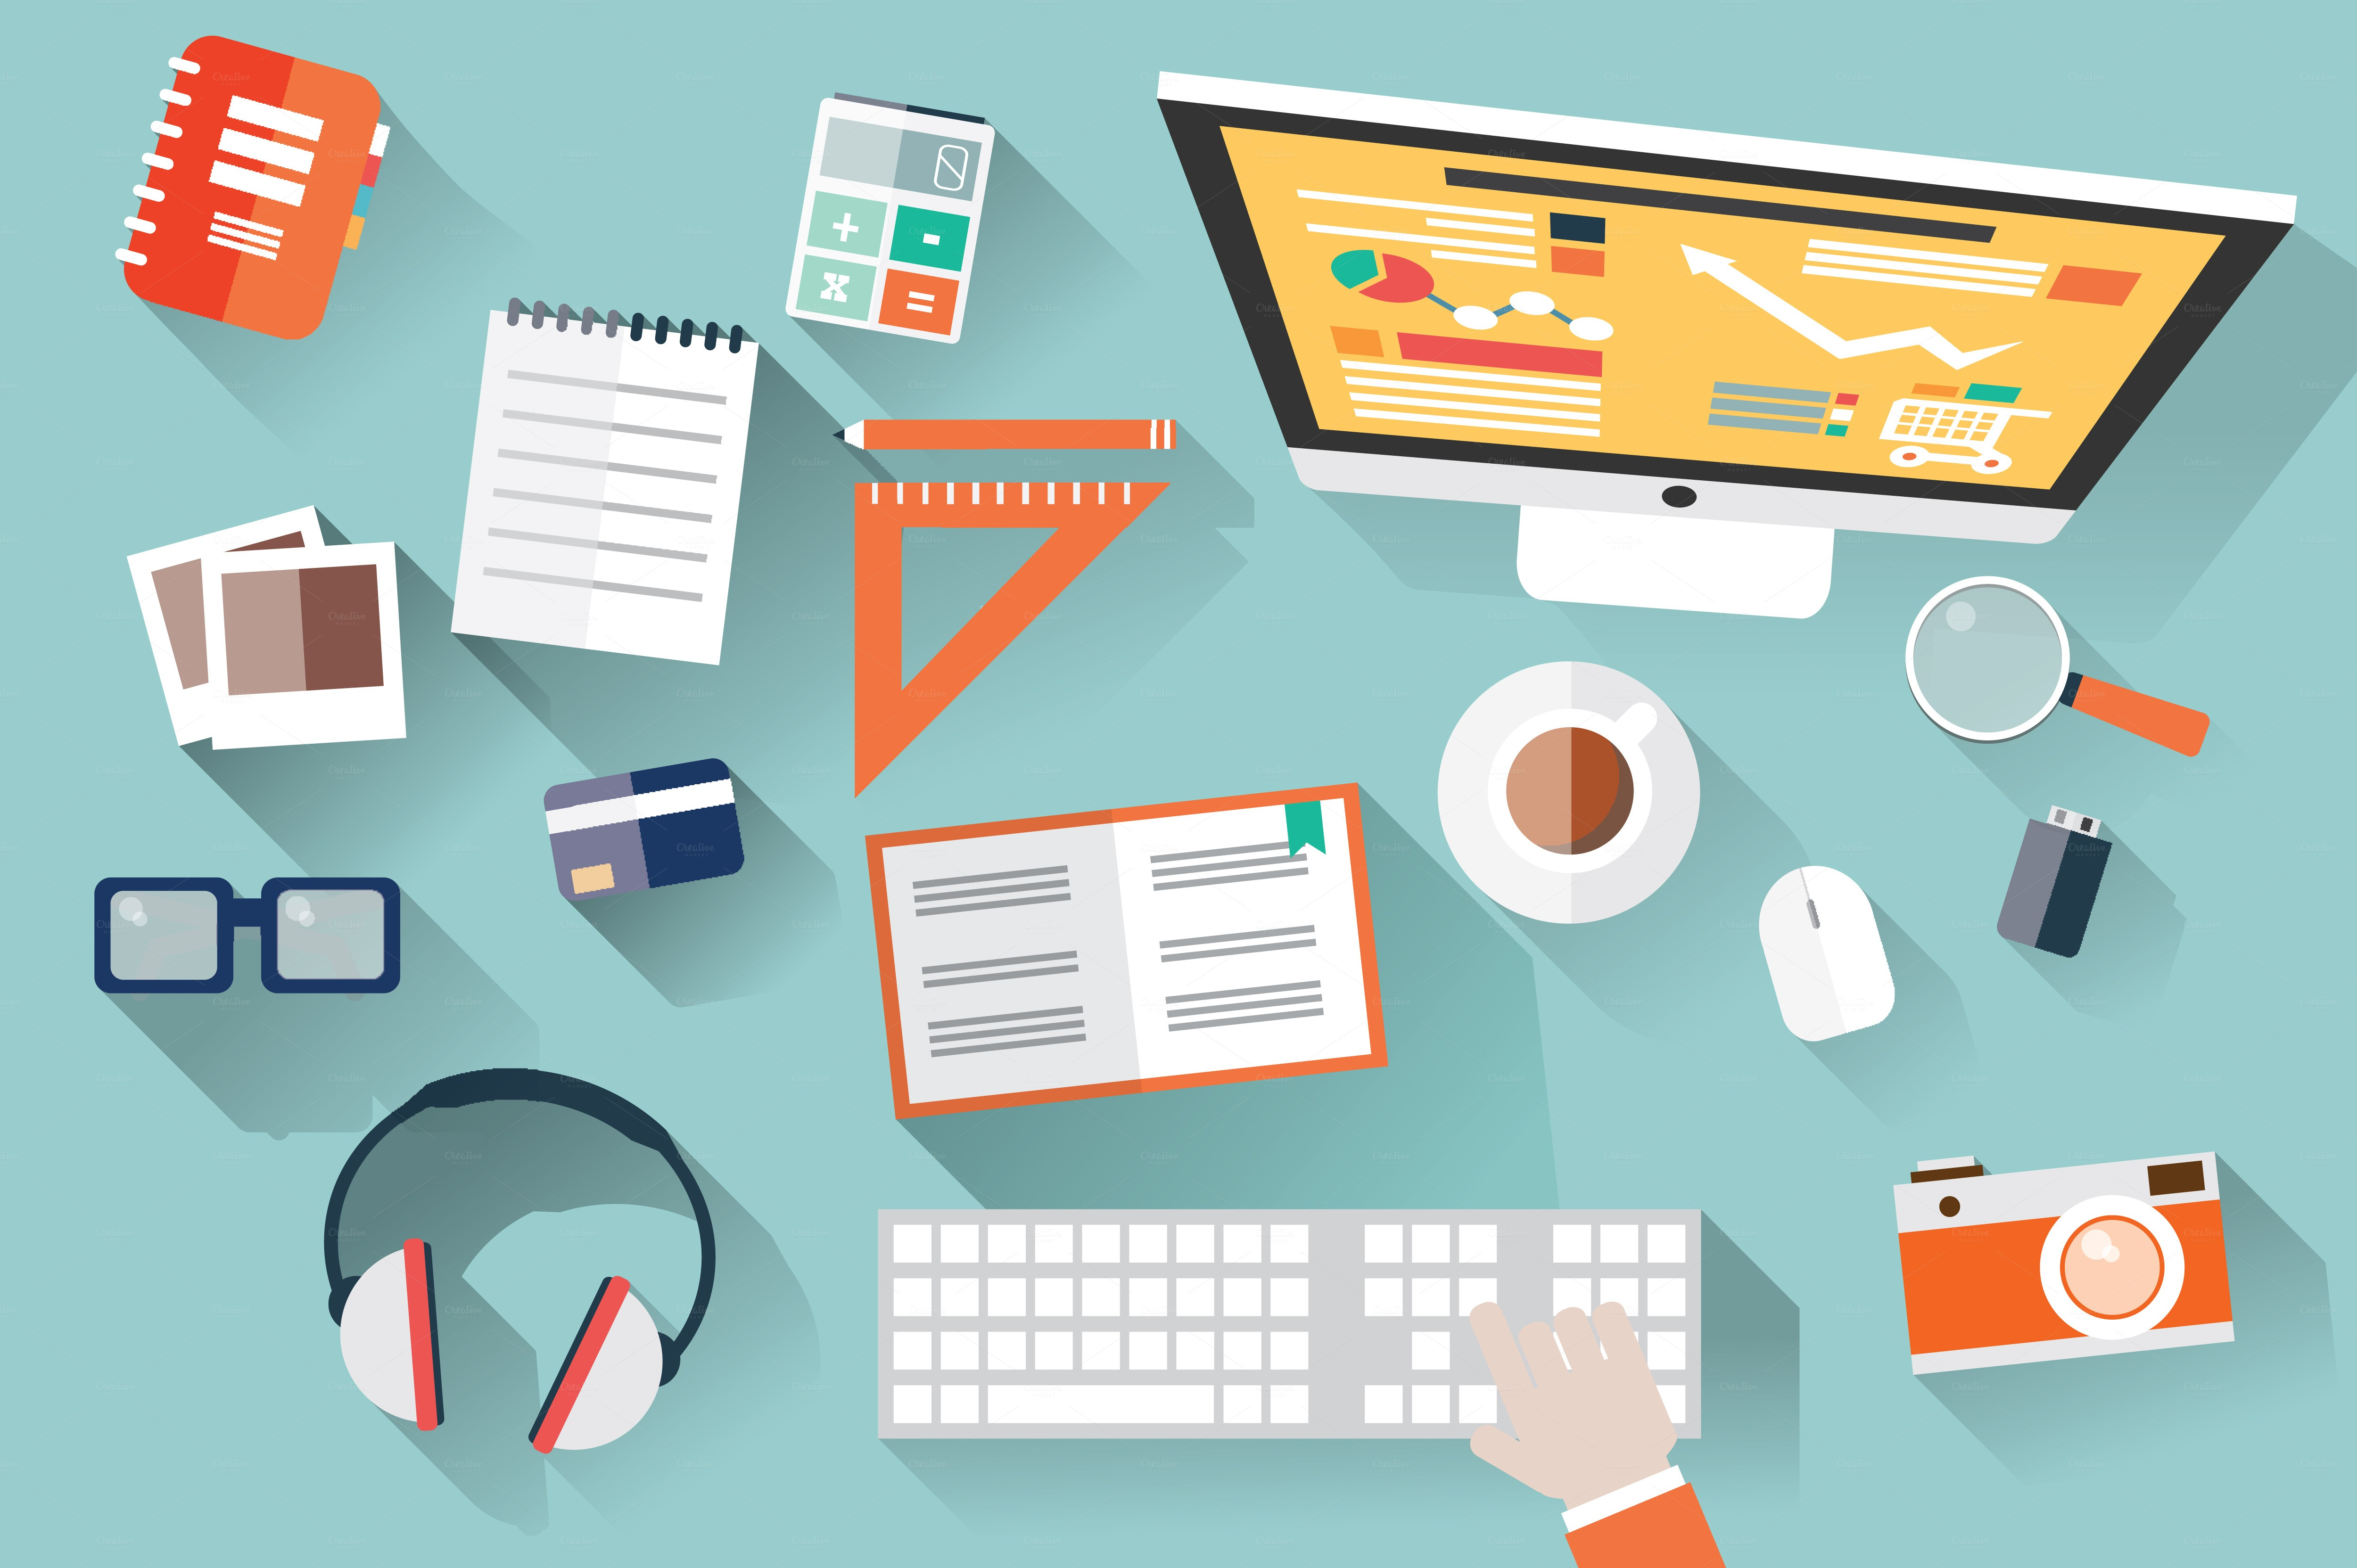 10 Big Web Design Trends Of 2015 And How To Use Them